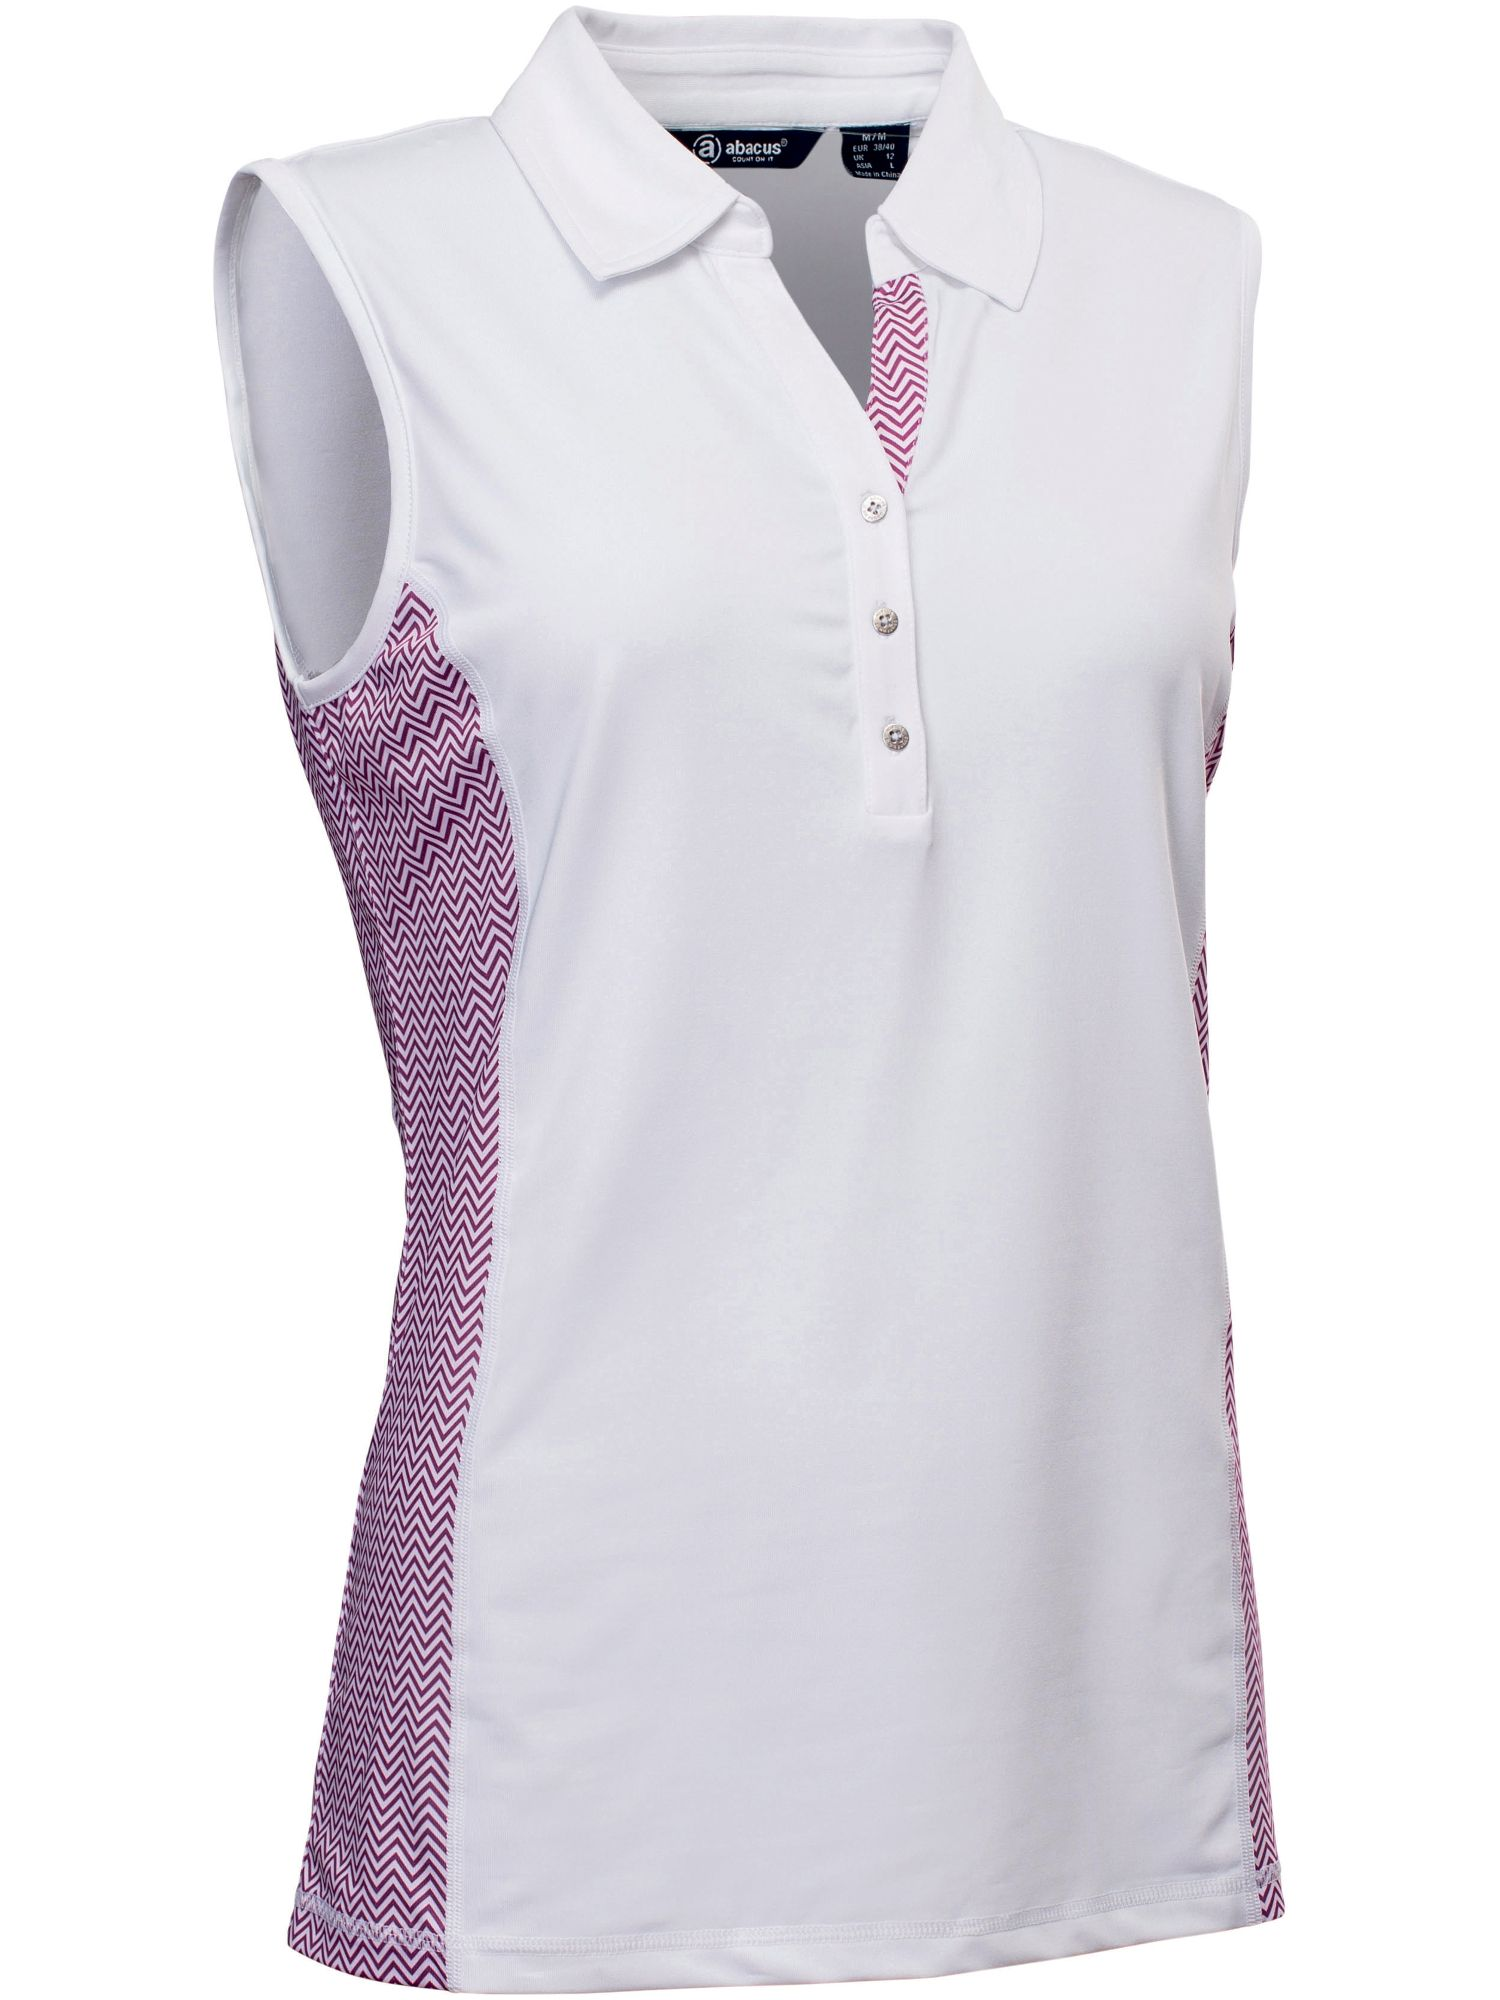 Abacus Karin Sleeveless Polo, Purple